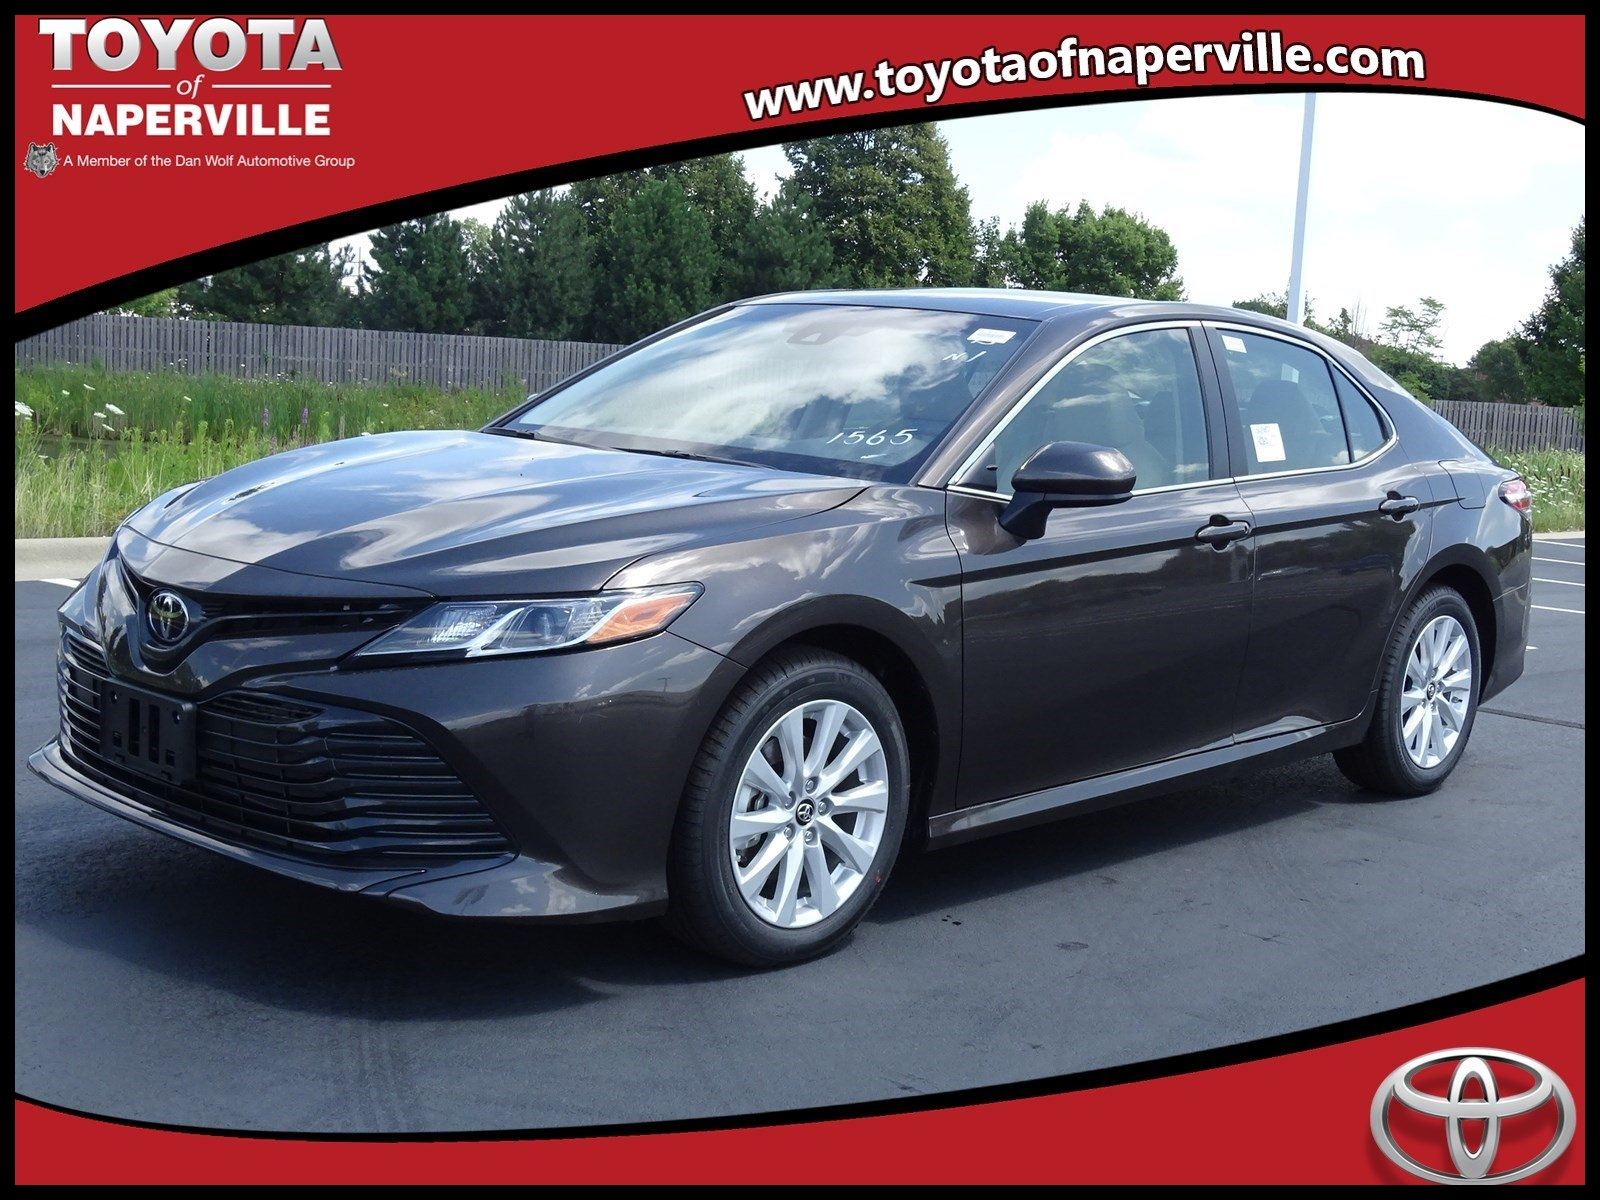 2018 toyota Camry Mpg Picture New 2018 toyota Camry Le 4d Sedan In Naperville C Spy